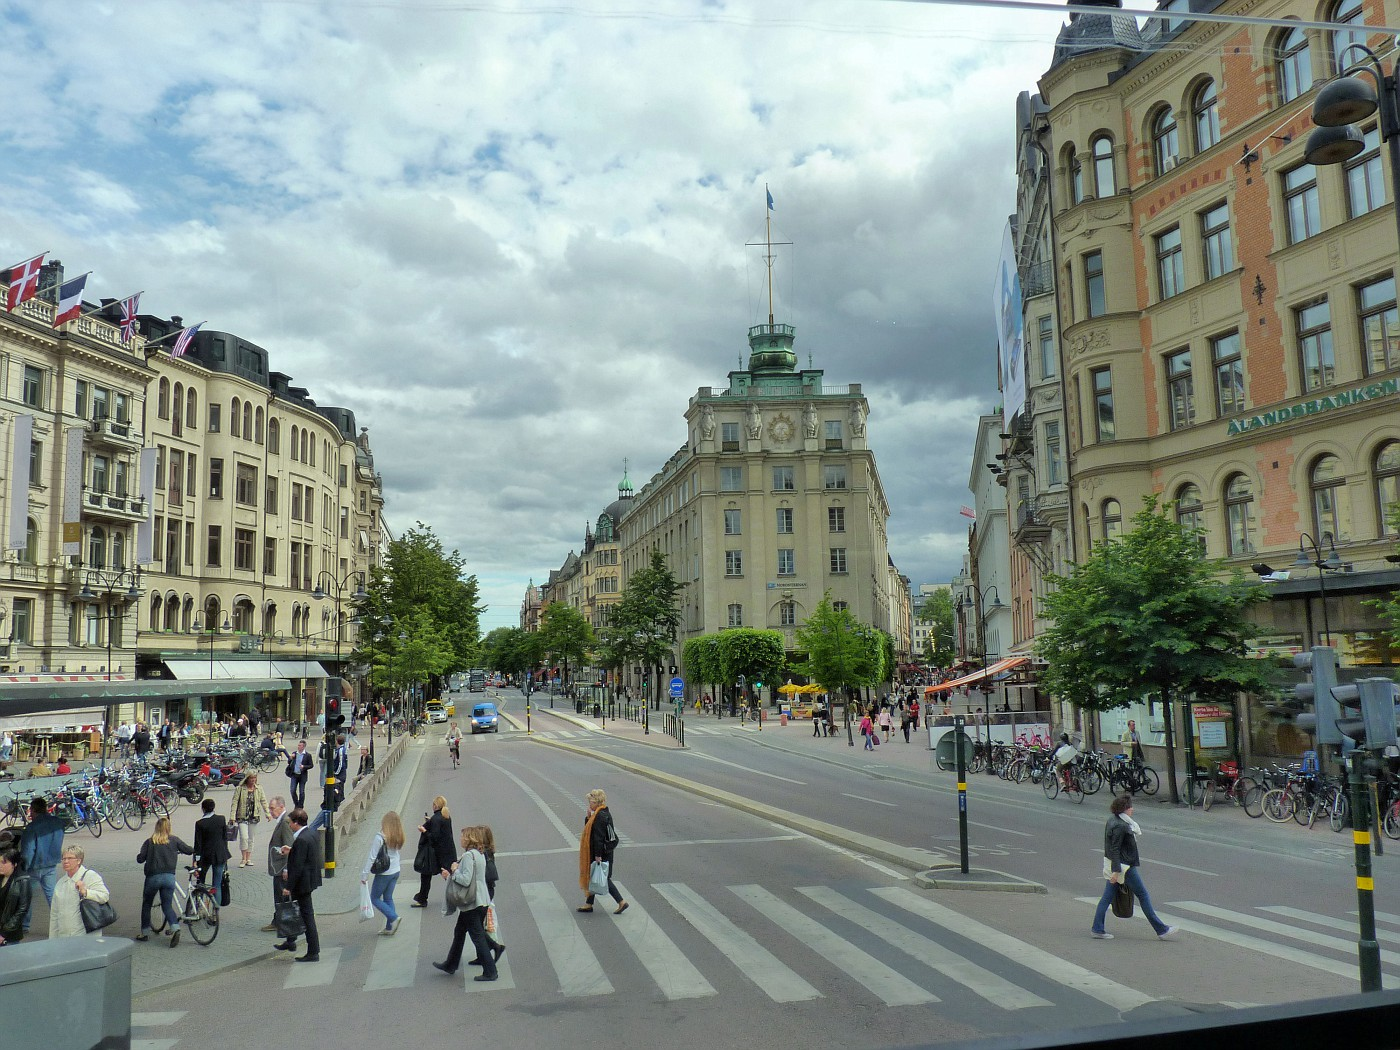 2010 06 21 45 Second day with Serge & Angela in Stockholm.JPG